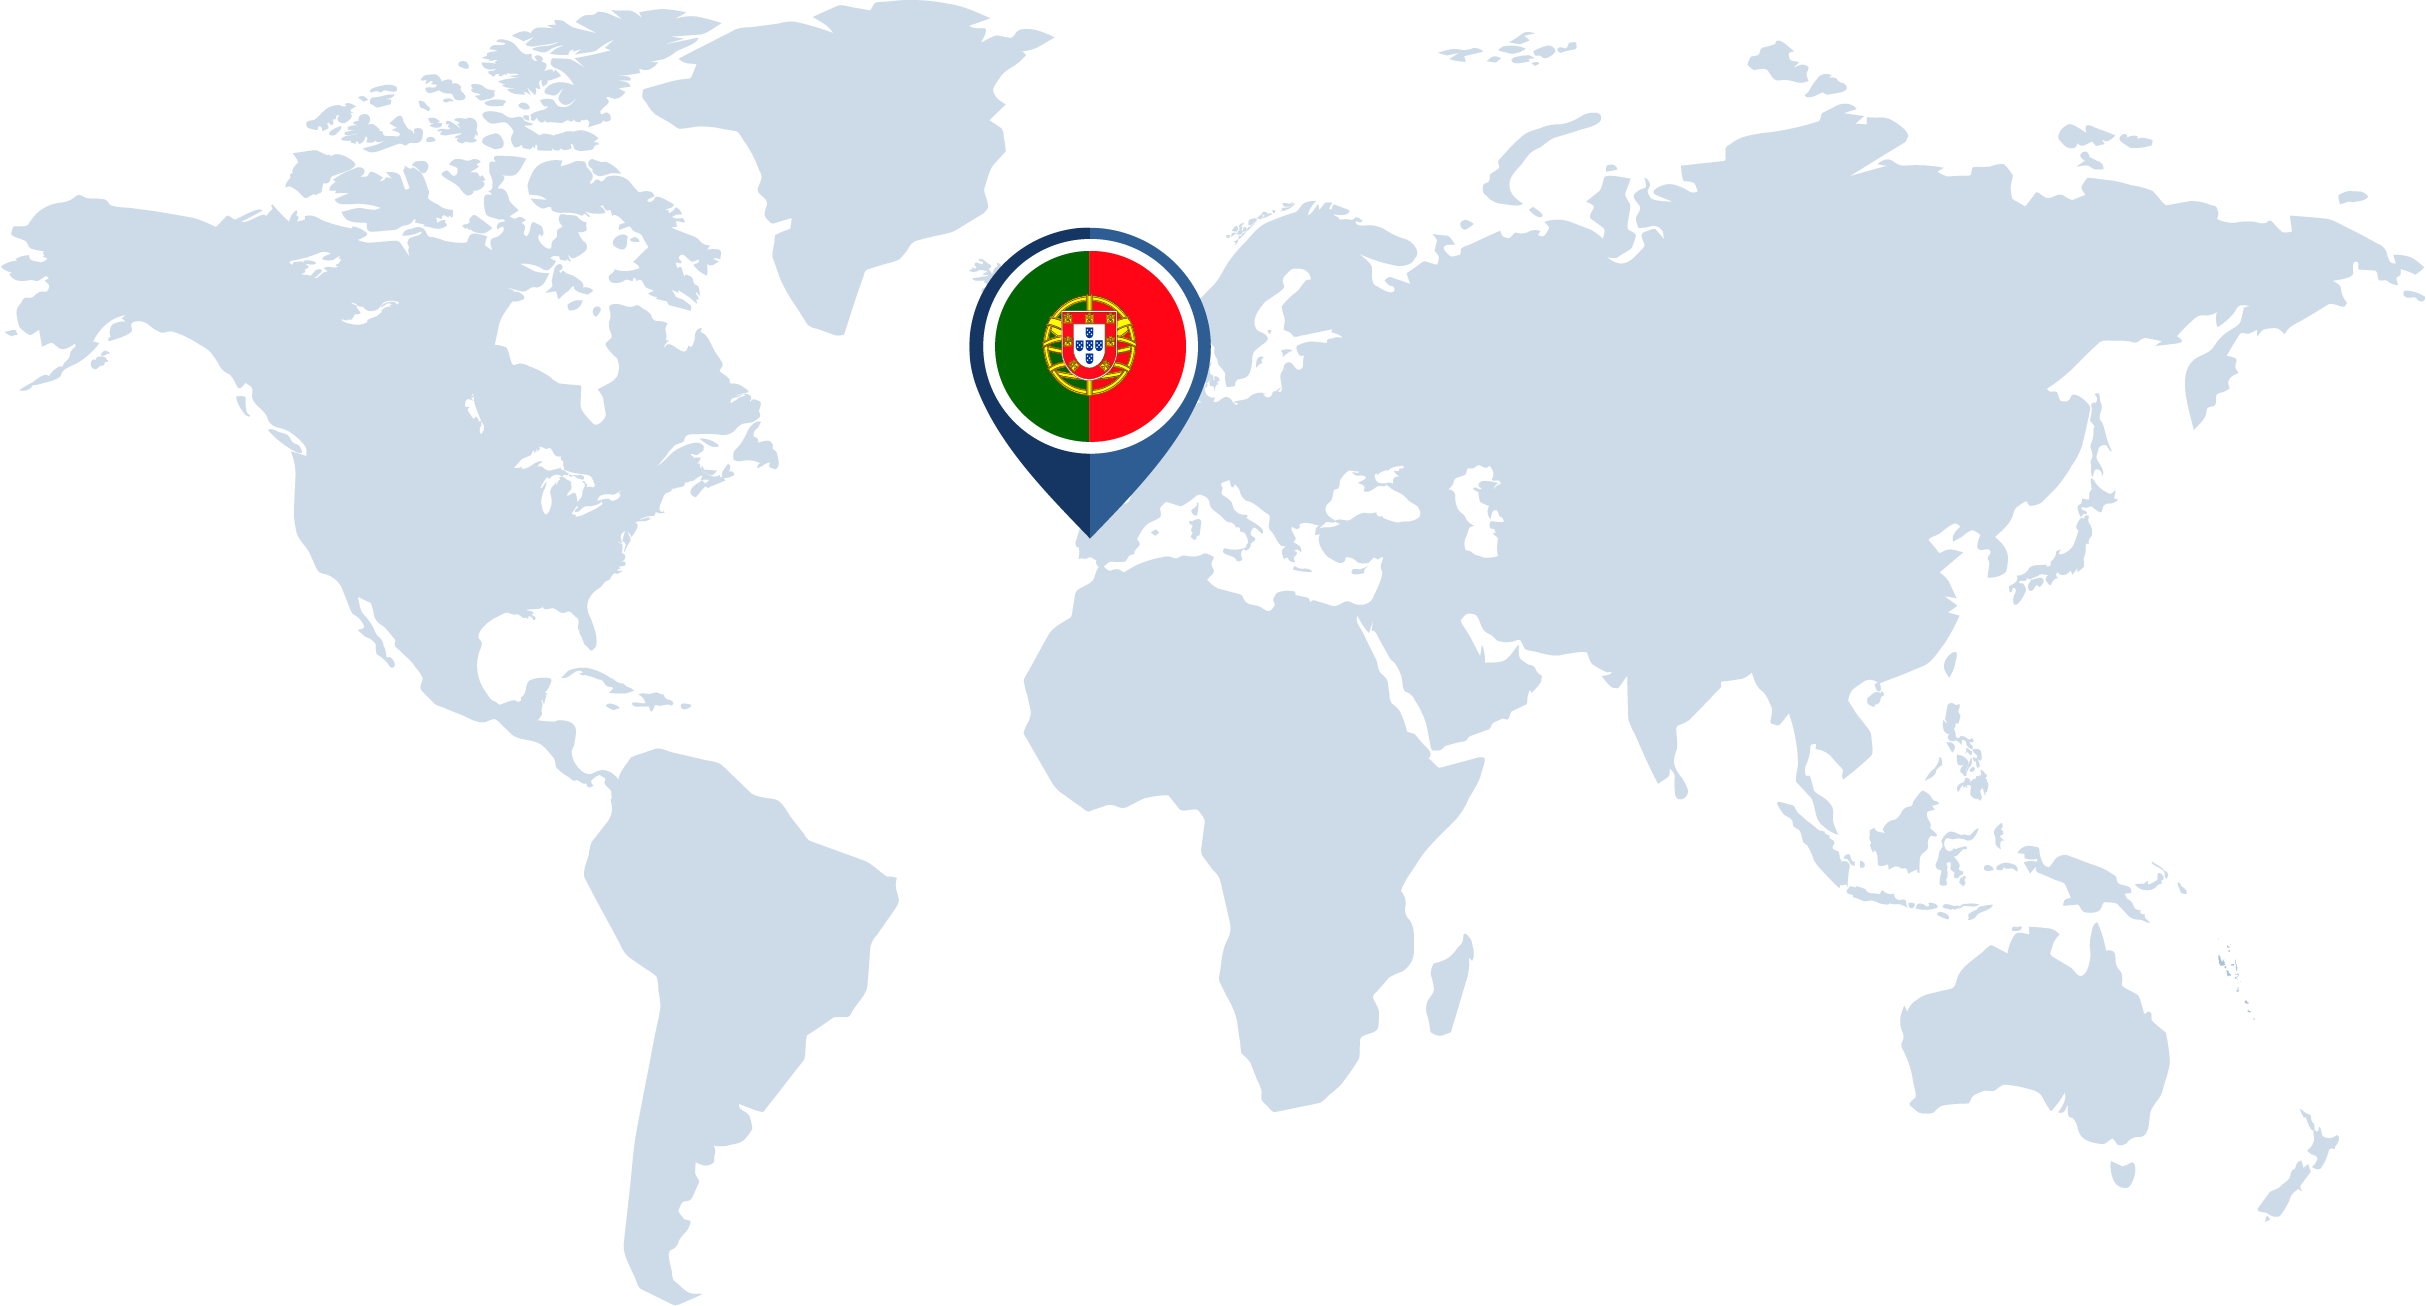 https://bluemina.com/wp-content/uploads/2020/02/portugal-map-and-flag-1.png